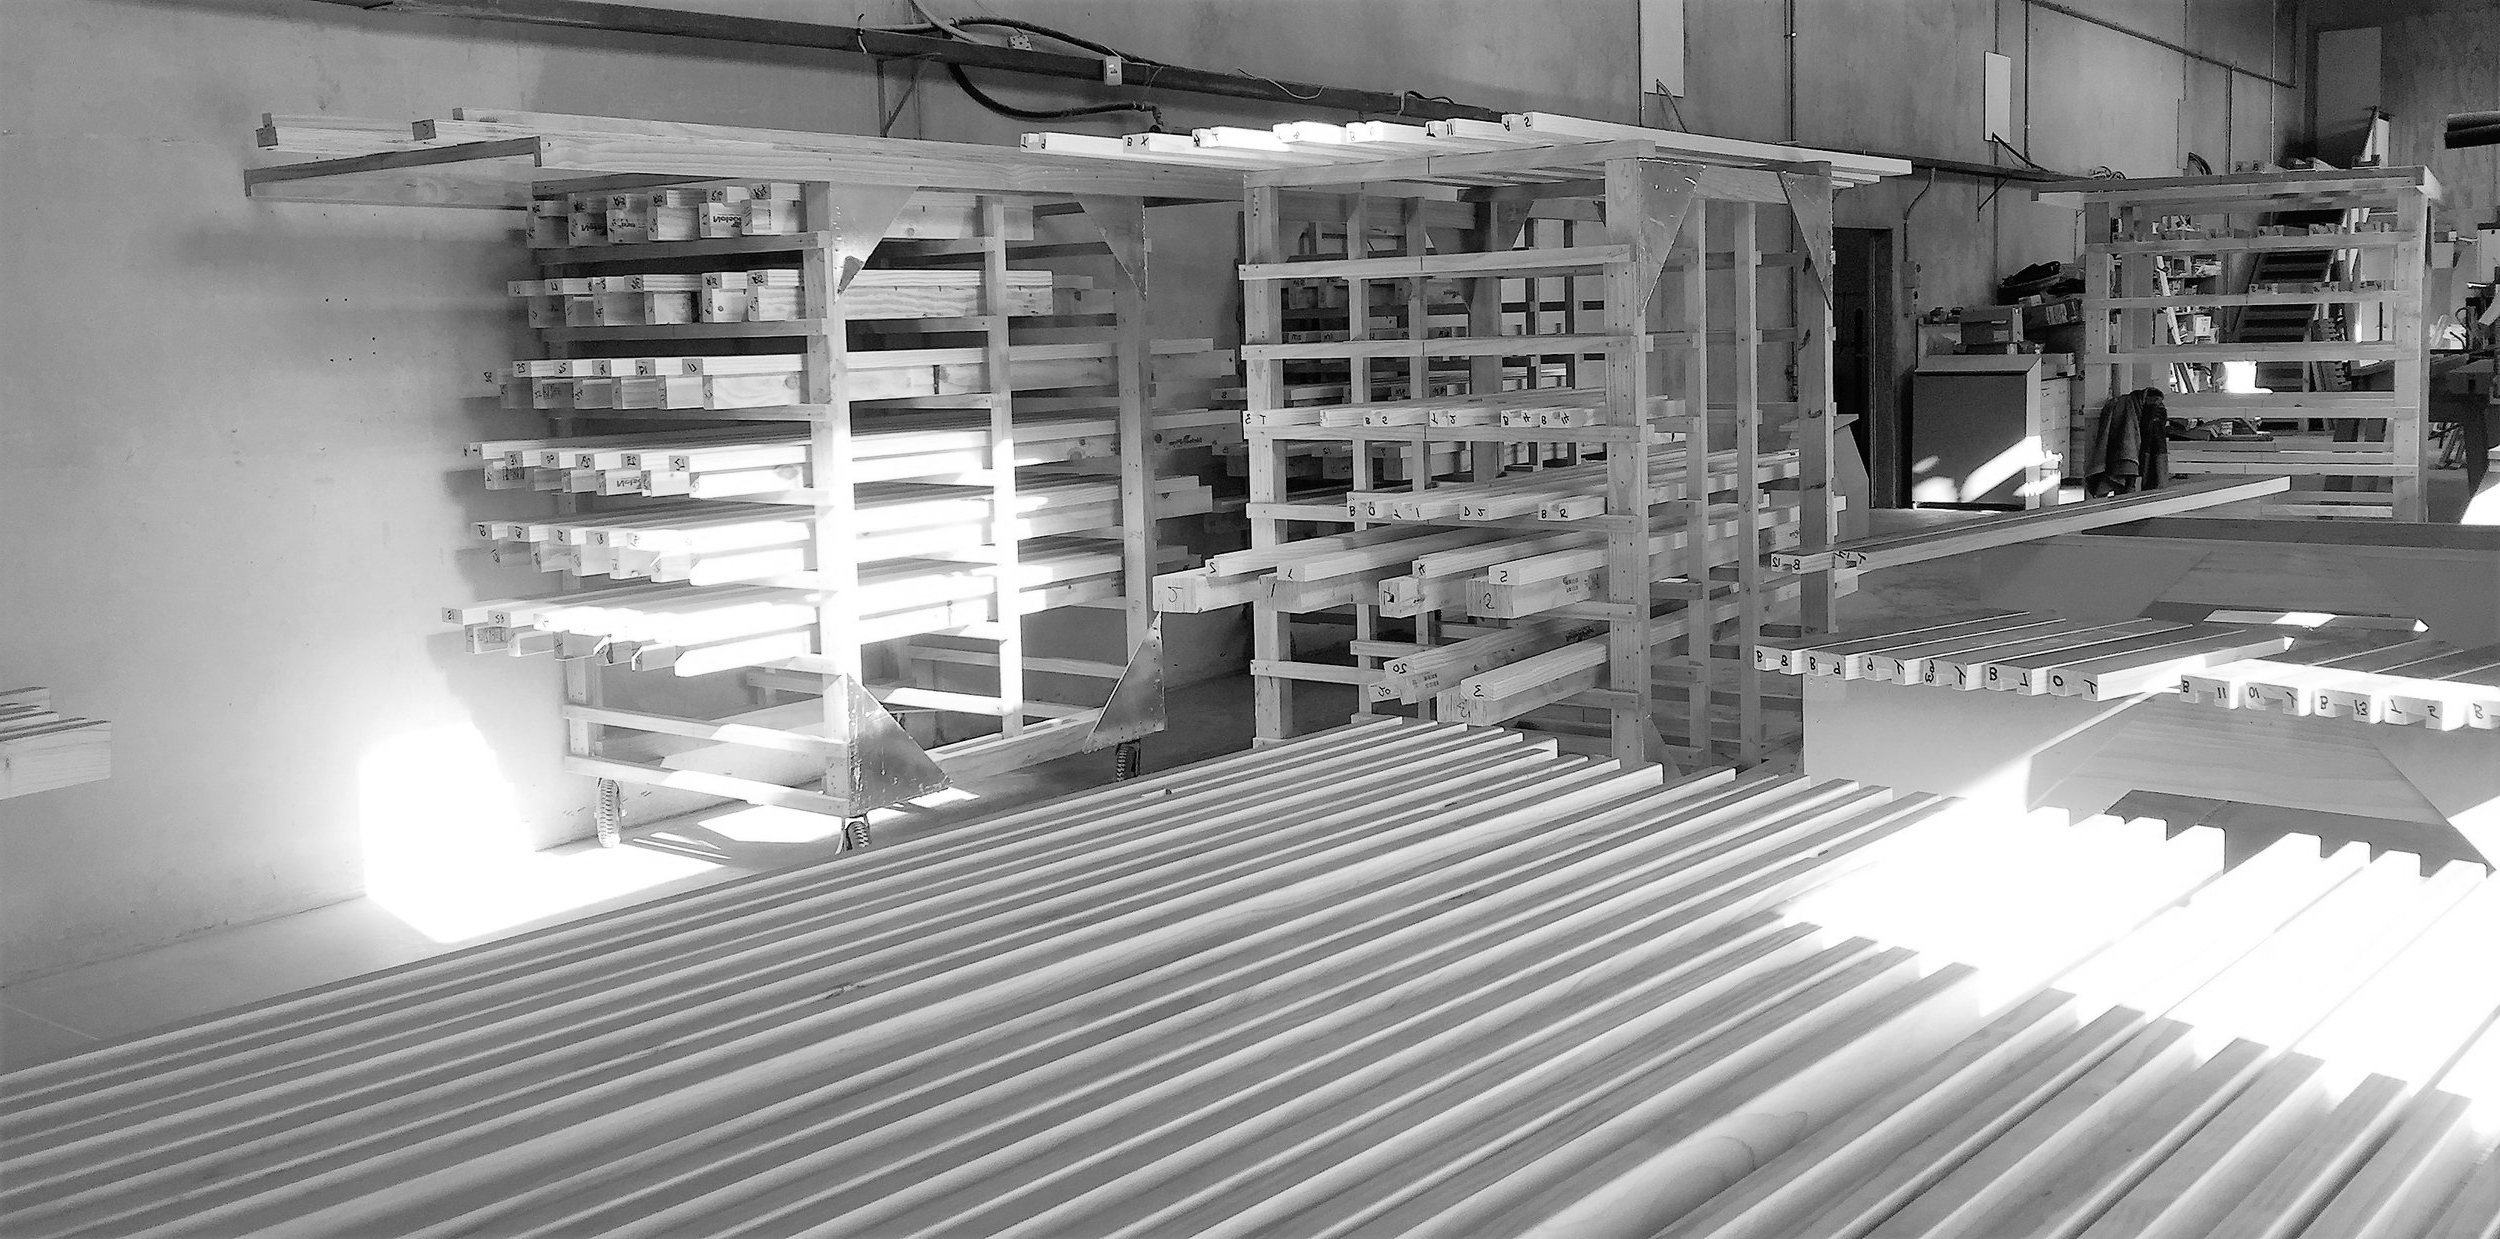 Fabrication - Once consent has been granted we develop the working drawings for the fabrication of your projects components in our Marlborough Factory. Our skilled craftsman work closely with our designer to ensure perfect fit and finishes.